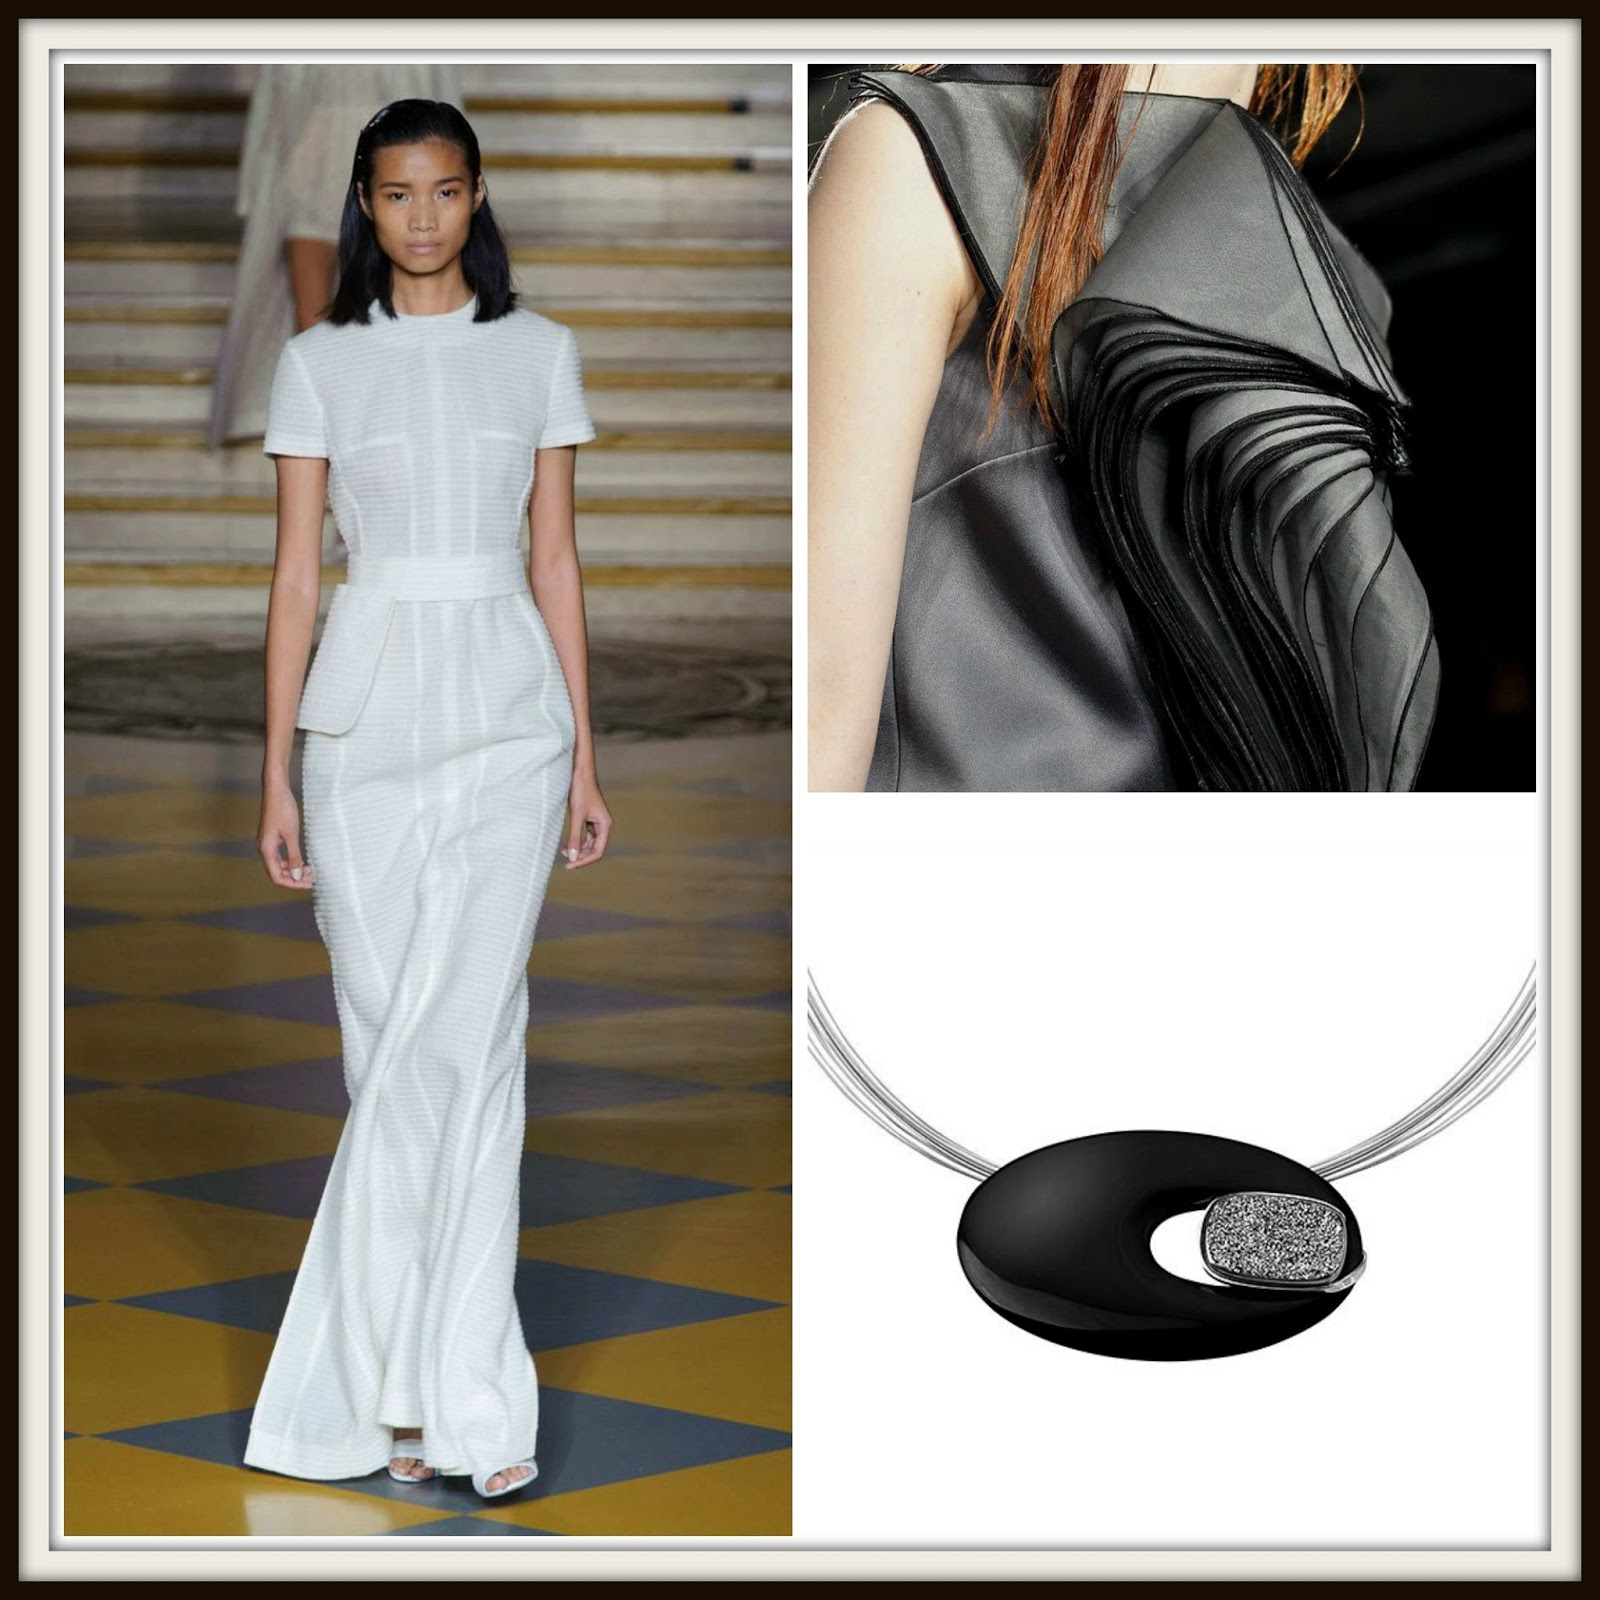 LFW2015, NYFW2015, Emilia Wickstead, black, white, monochrome, black jewelry, white jewelry, statement pendants